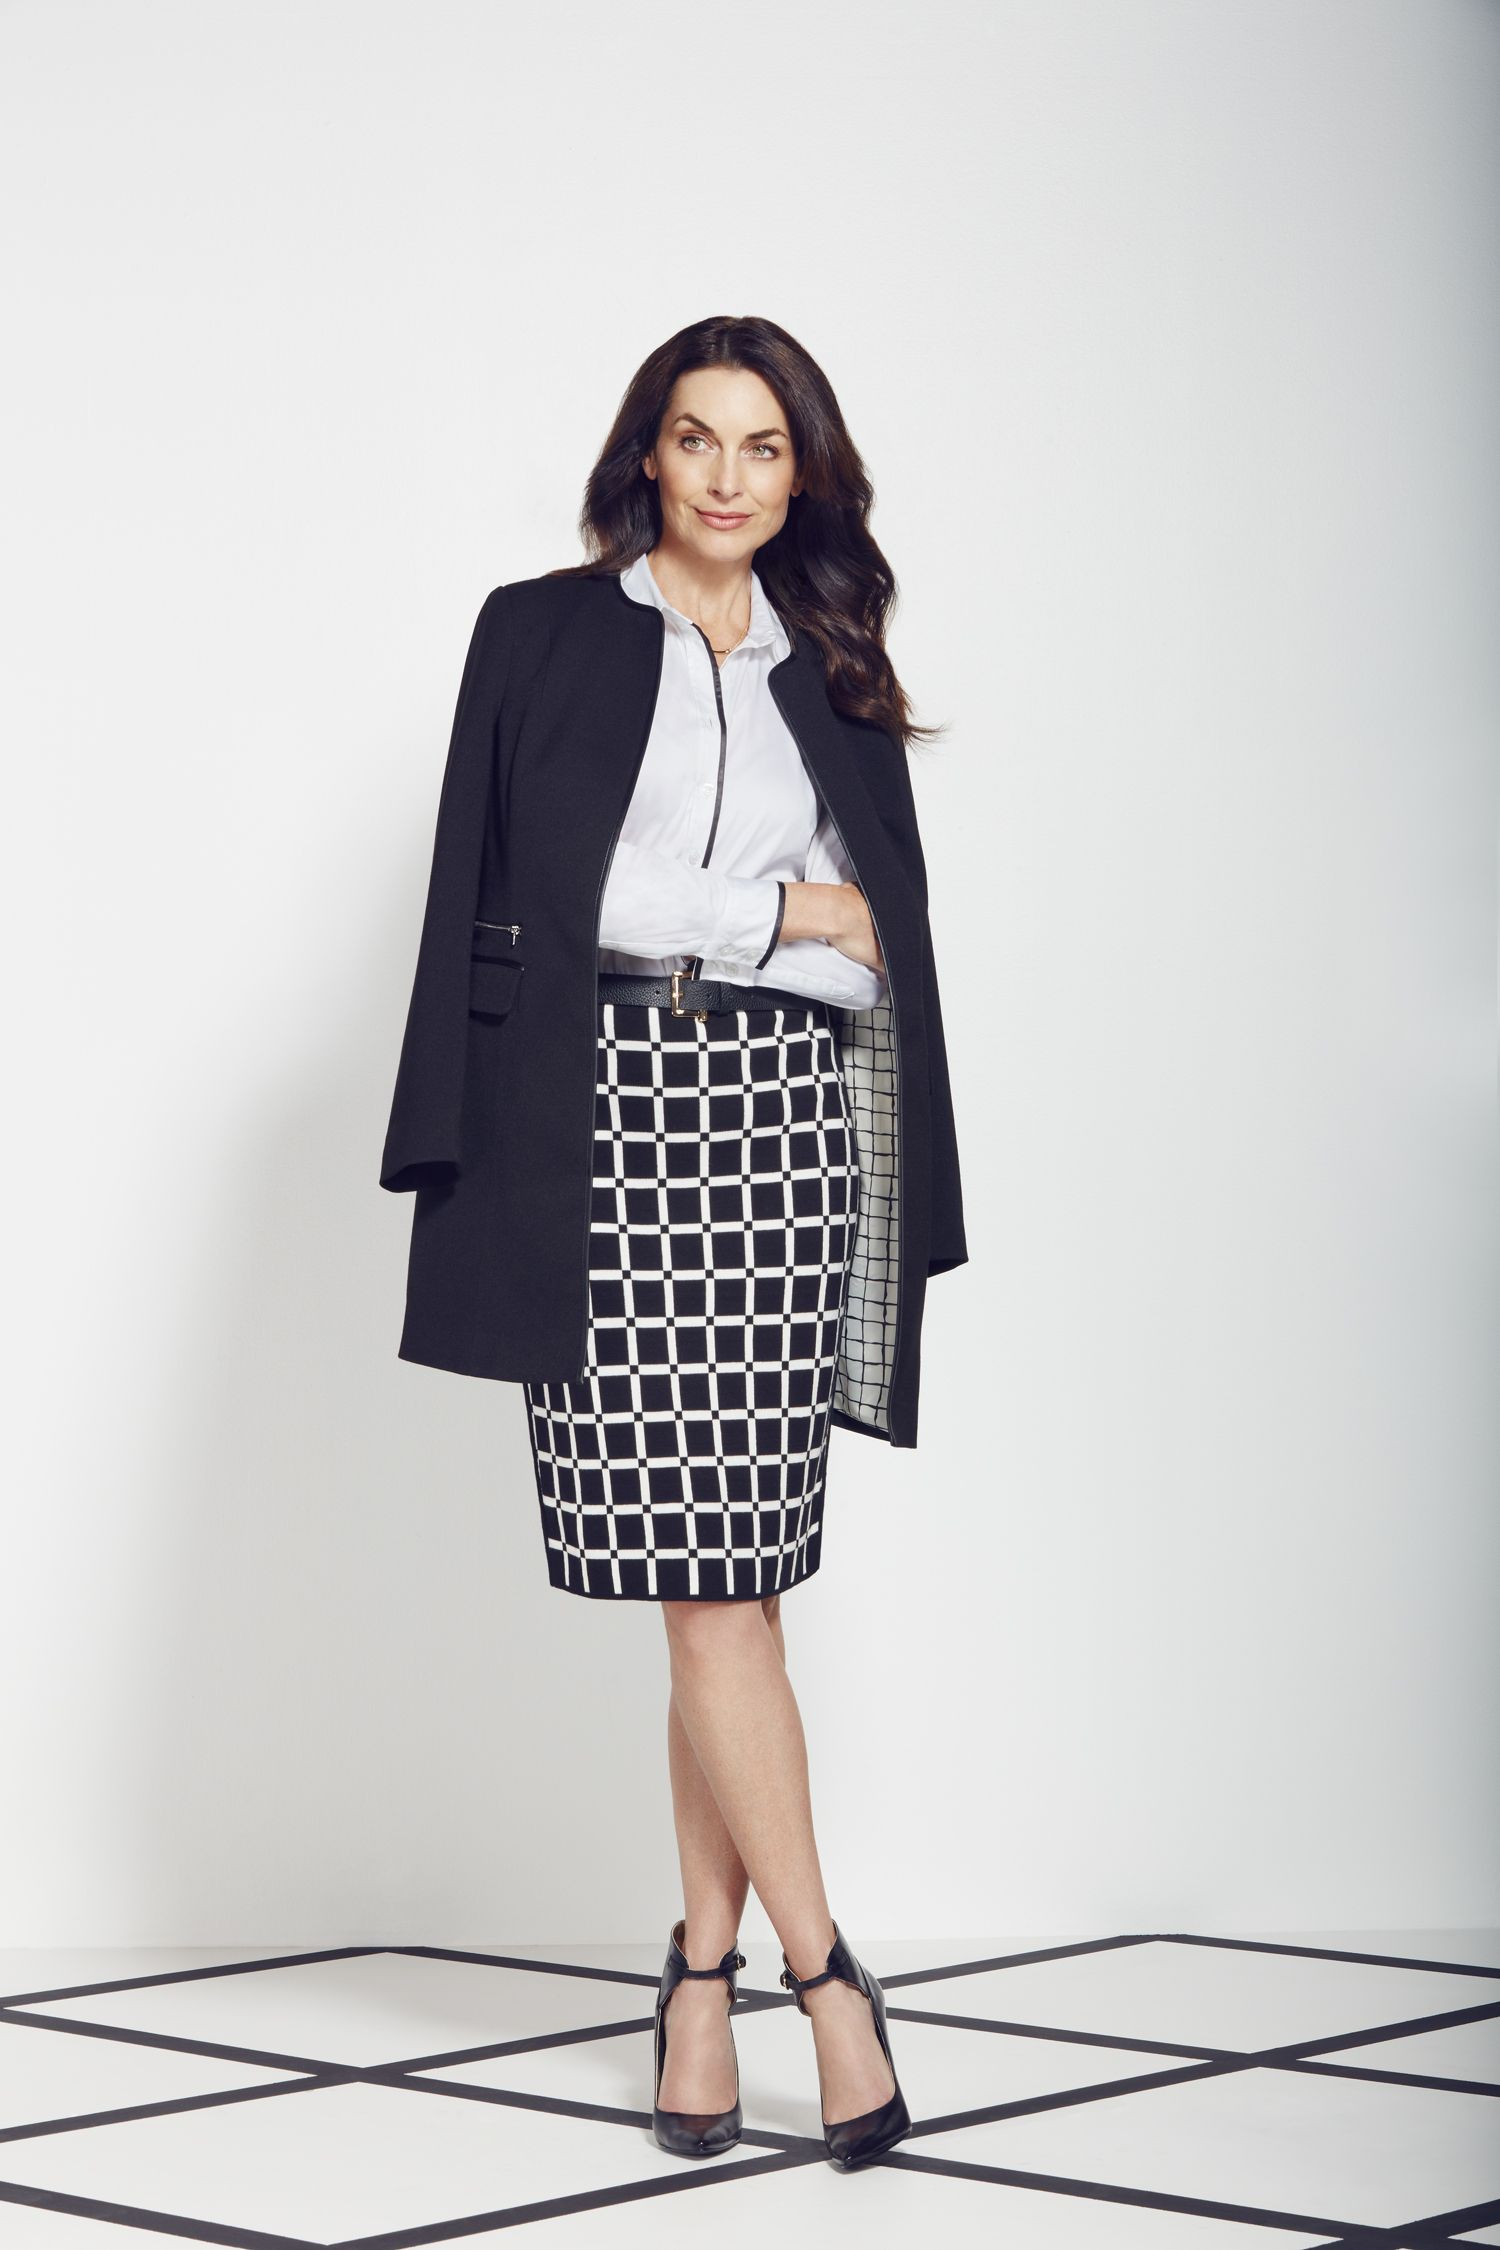 Black and white outfit ideas with pencil skirt, polka dot, tartan